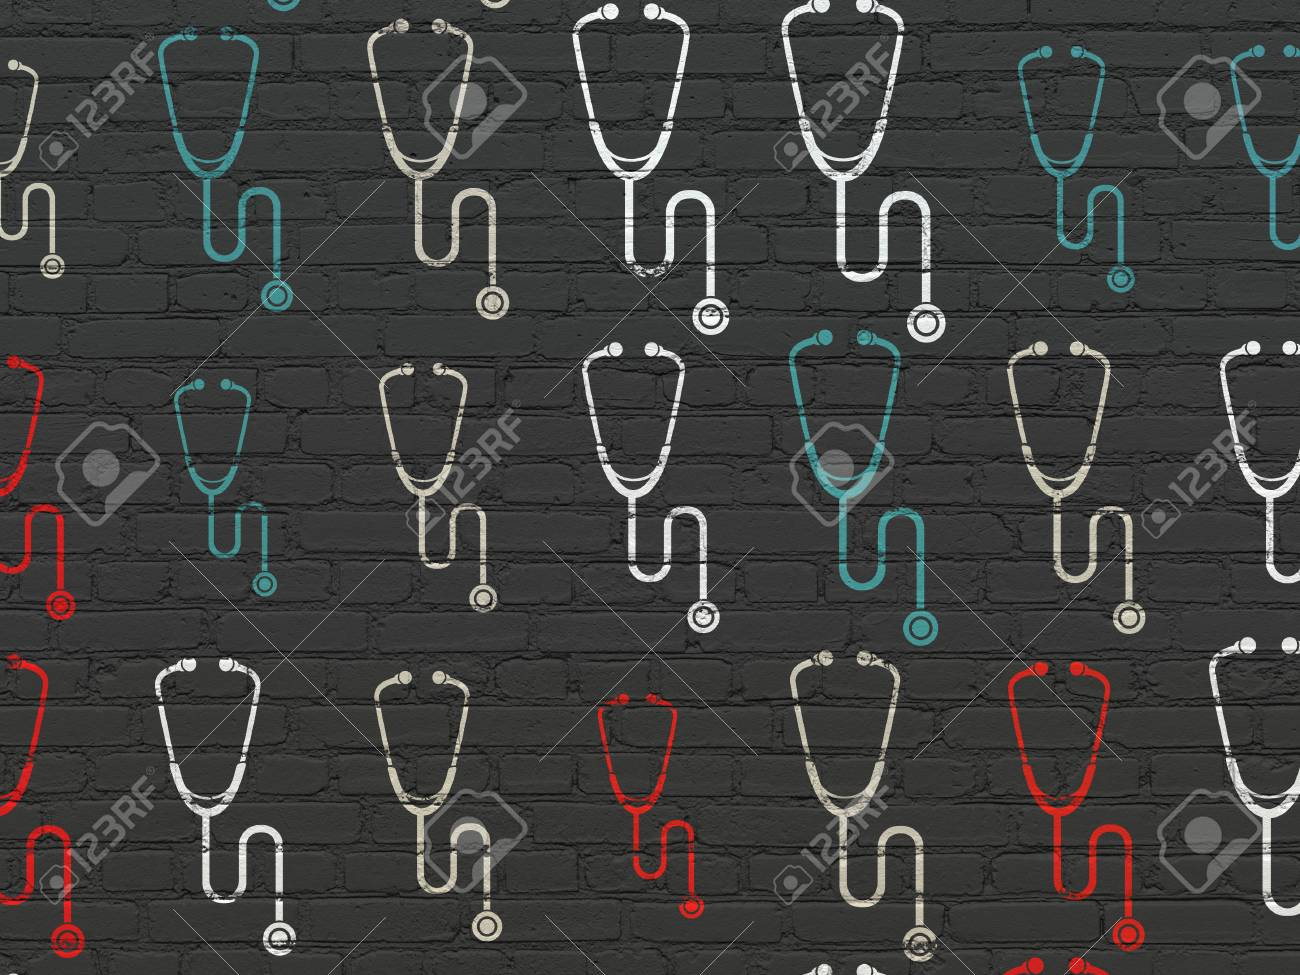 Medicine concept: Painted multicolor Stethoscope icons on Black